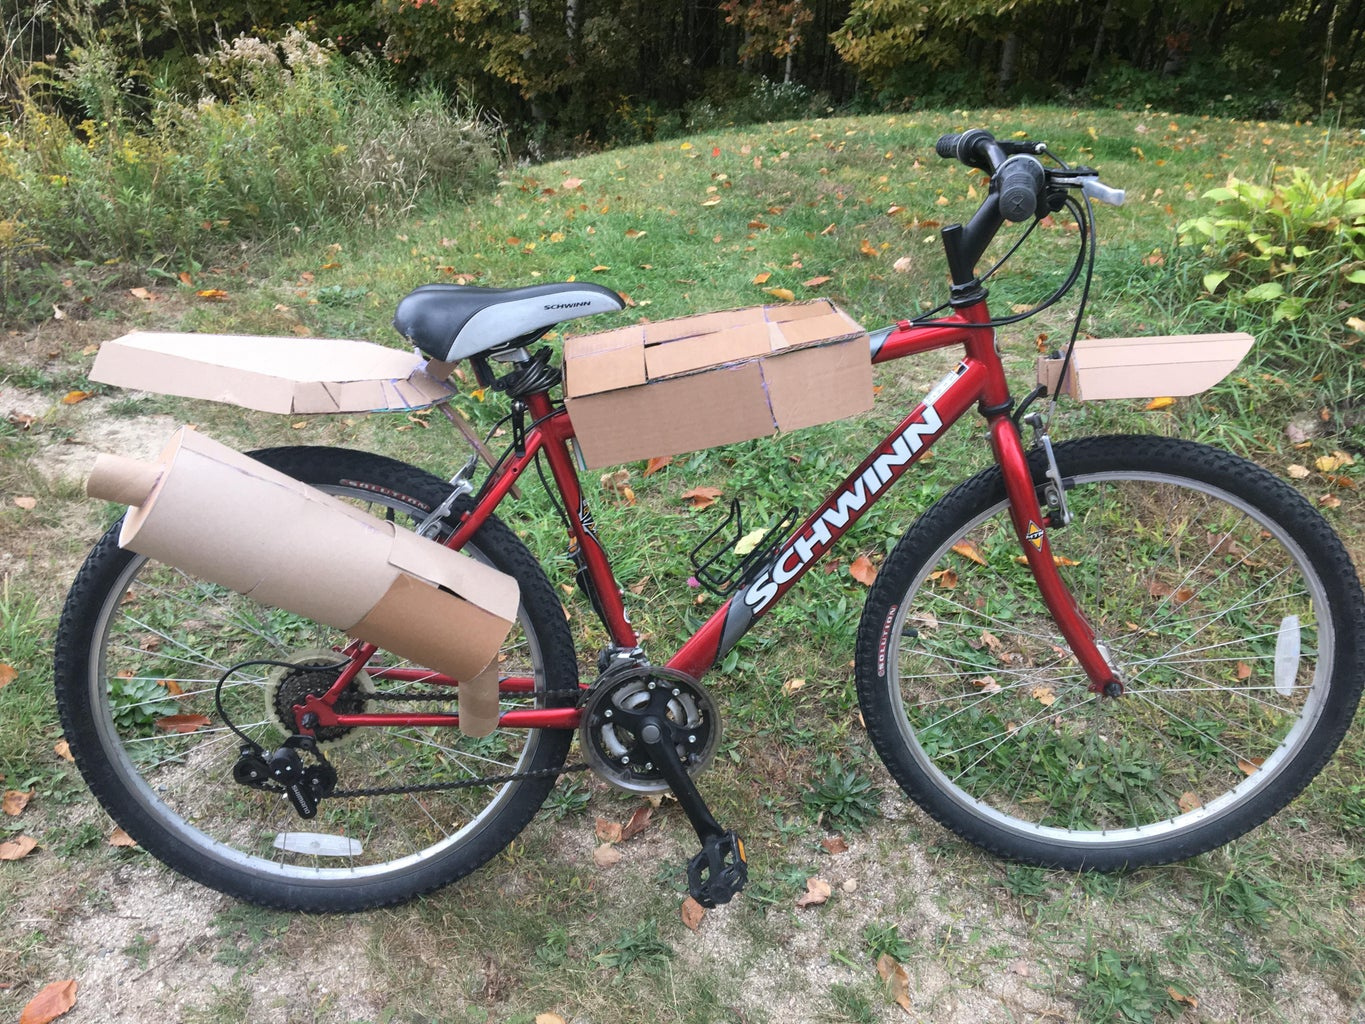 Convert Your Bike to a Cardboard Motorcycle